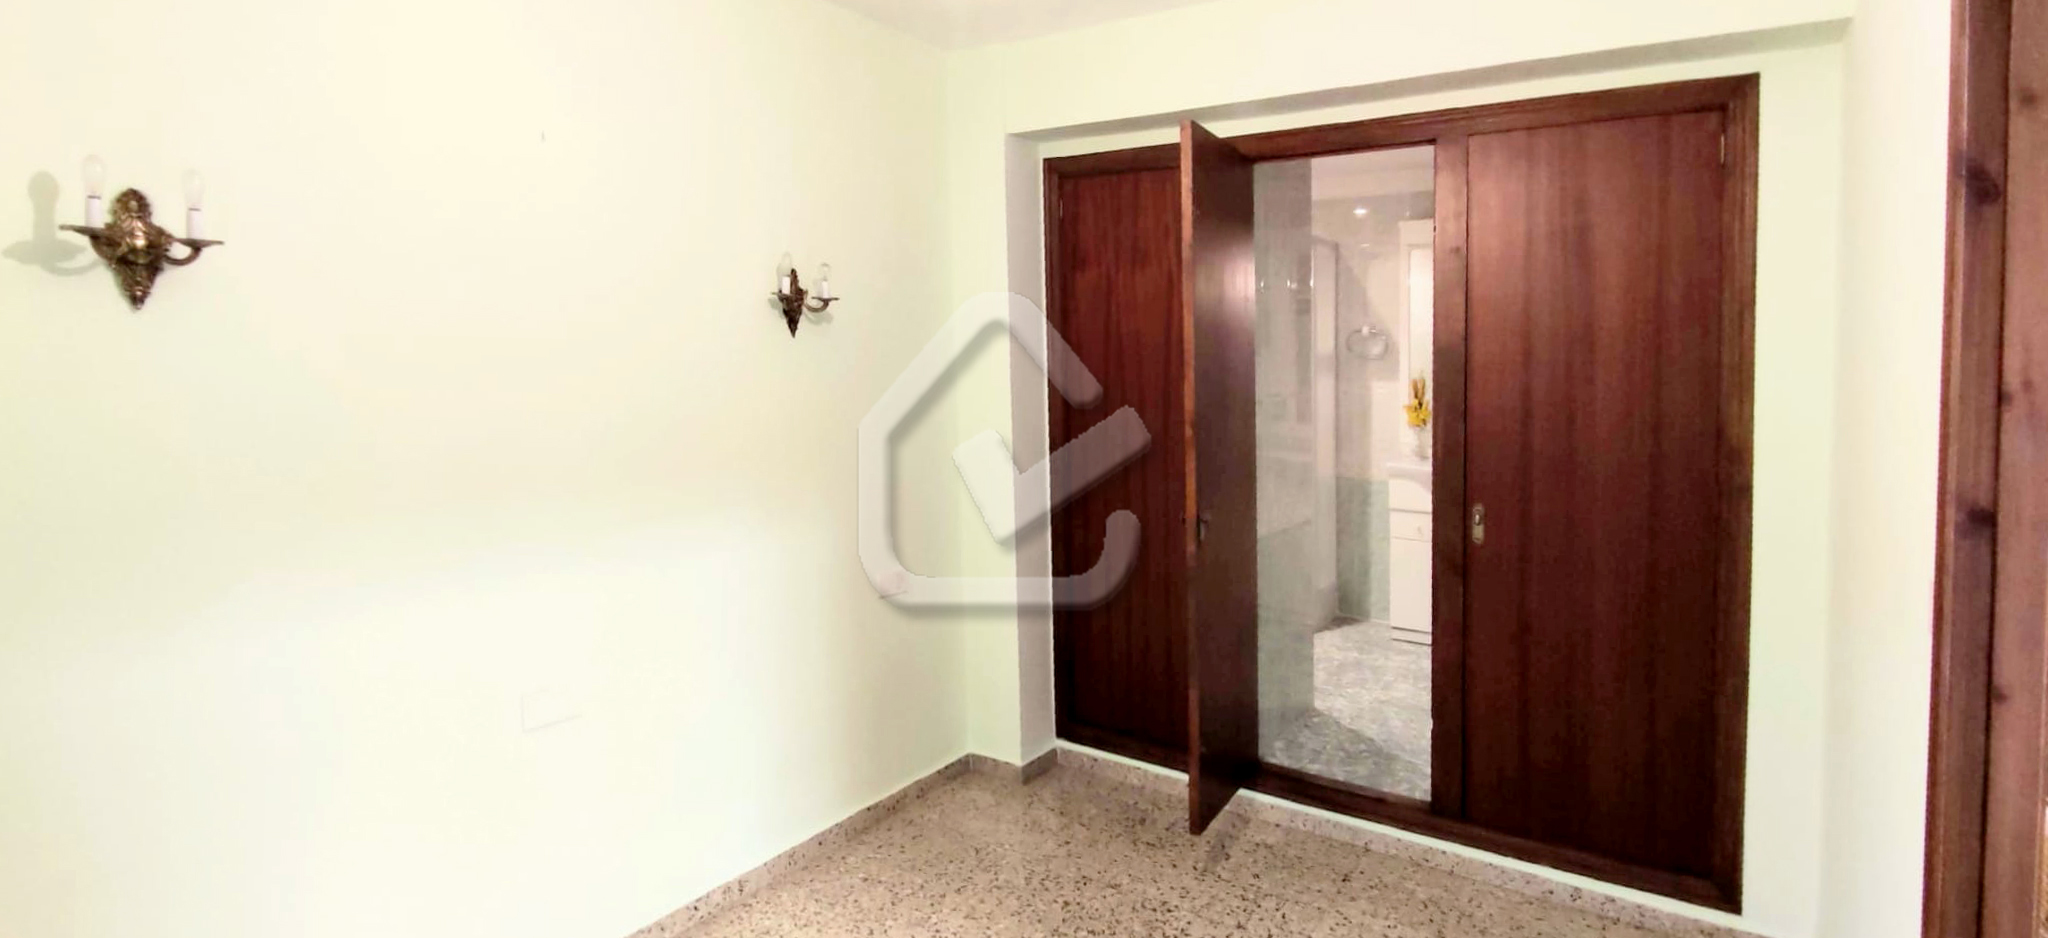 Photo  number 25: Flat / Apartment in Sale in Denia, Area Casco urbano, Sector Centro. Ref. 5-40-14951